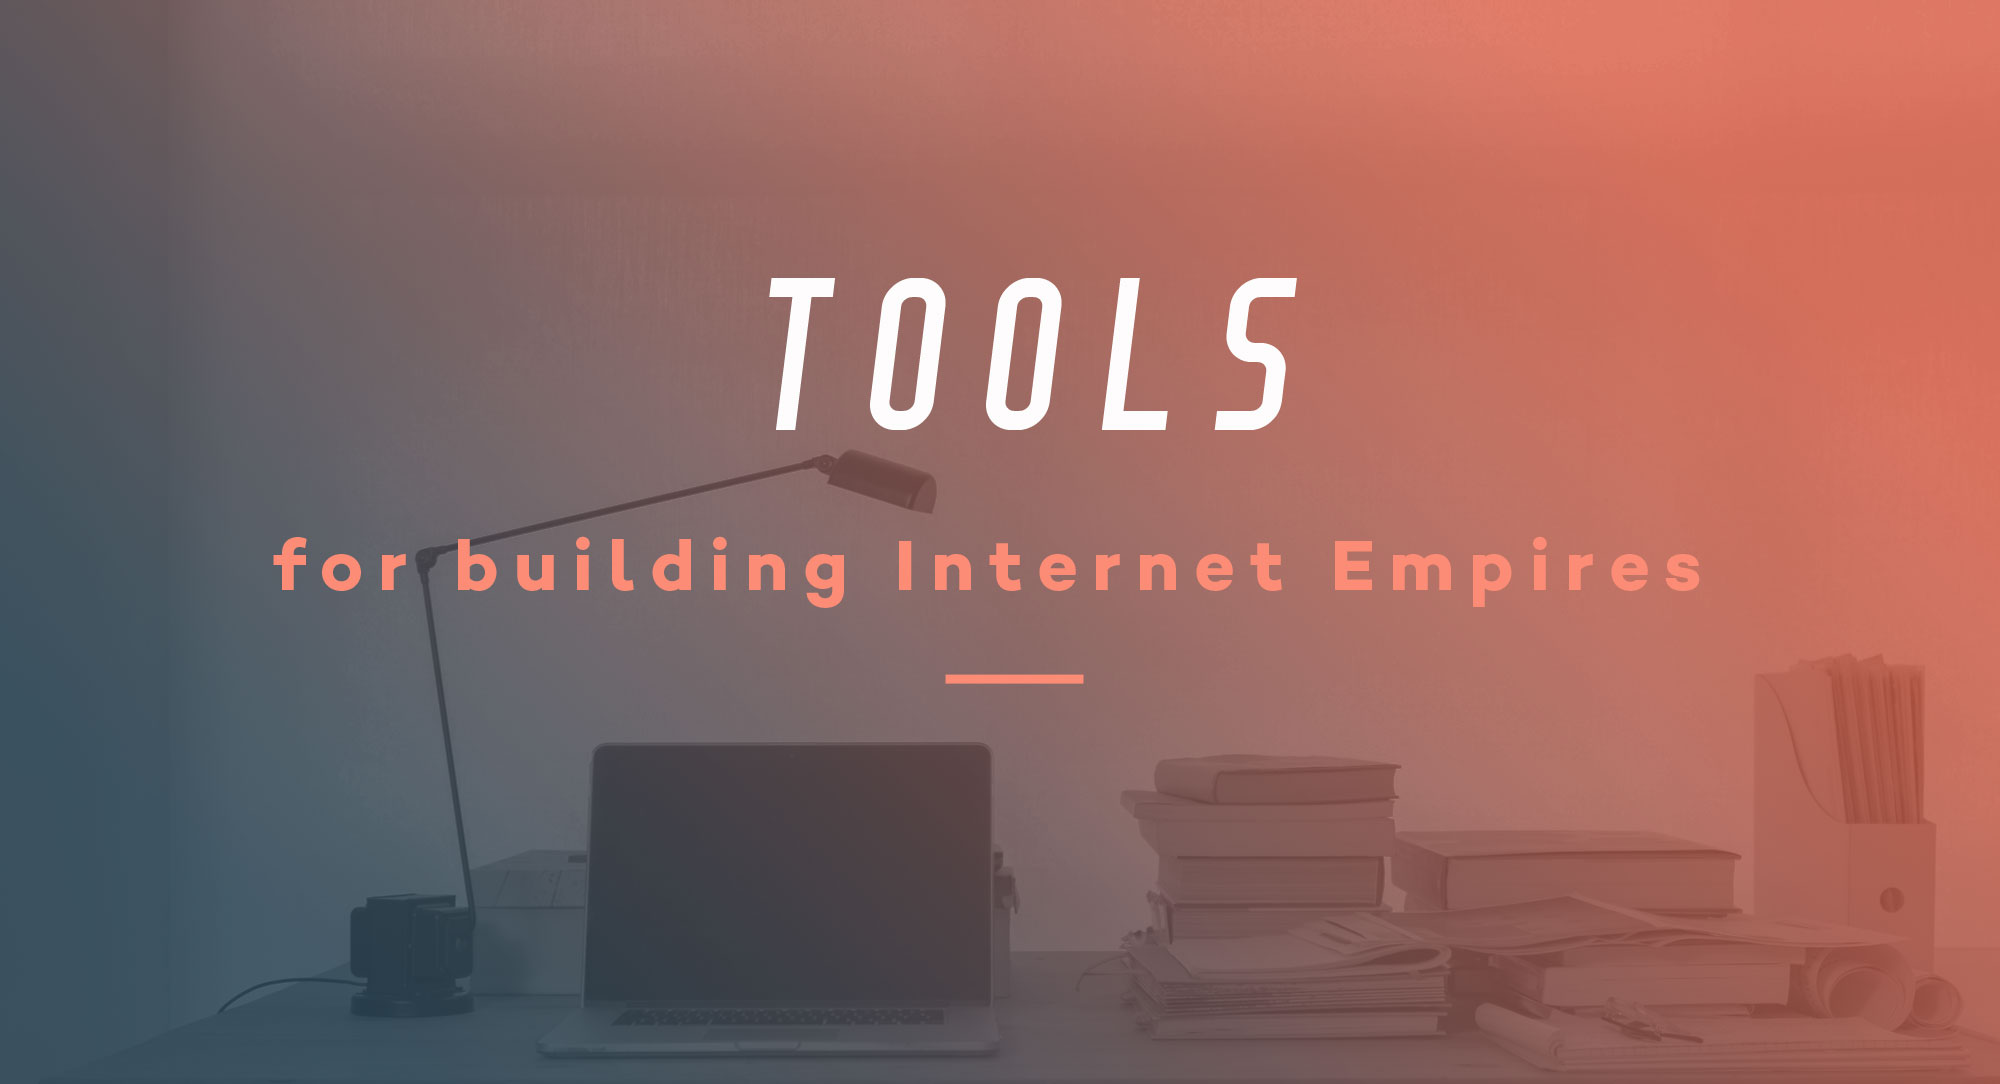 Tools for building internet empires